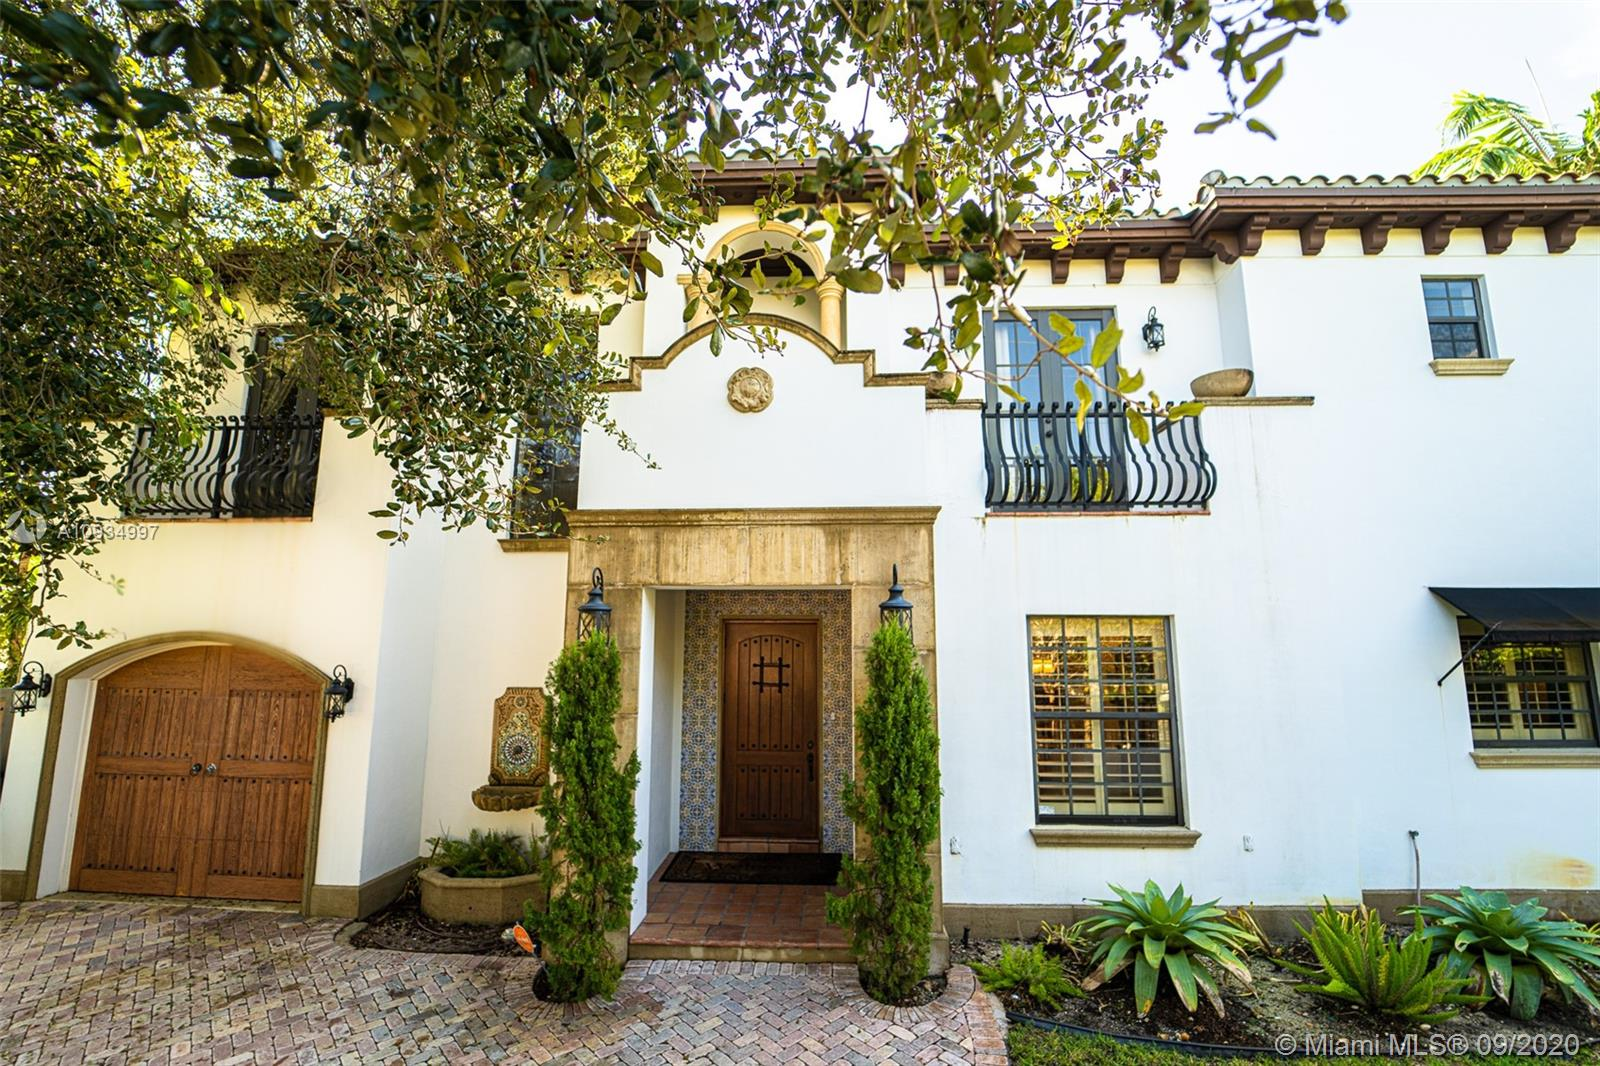 Beautiful 5 bedroom 4 bathroom two story Spanish Villa-style home in the heart of The Roads/Grove. Formal living and dining room, fireplace, gourmet kitchen with granite countertops and stainless steel appliances. Amazing master suite with private balcony and huge marble spa bathroom. Custom multimedia system throughout the house. Beautifully tiled floors with original crown molding throughout the home. Impact windows, pool & generator w/propane tank to run the whole house. Minutes from everywhere you want to be: Downtown, The Grove, South Miami, Miami Beach, Midtown, Key Biscayne and Coral Gables.